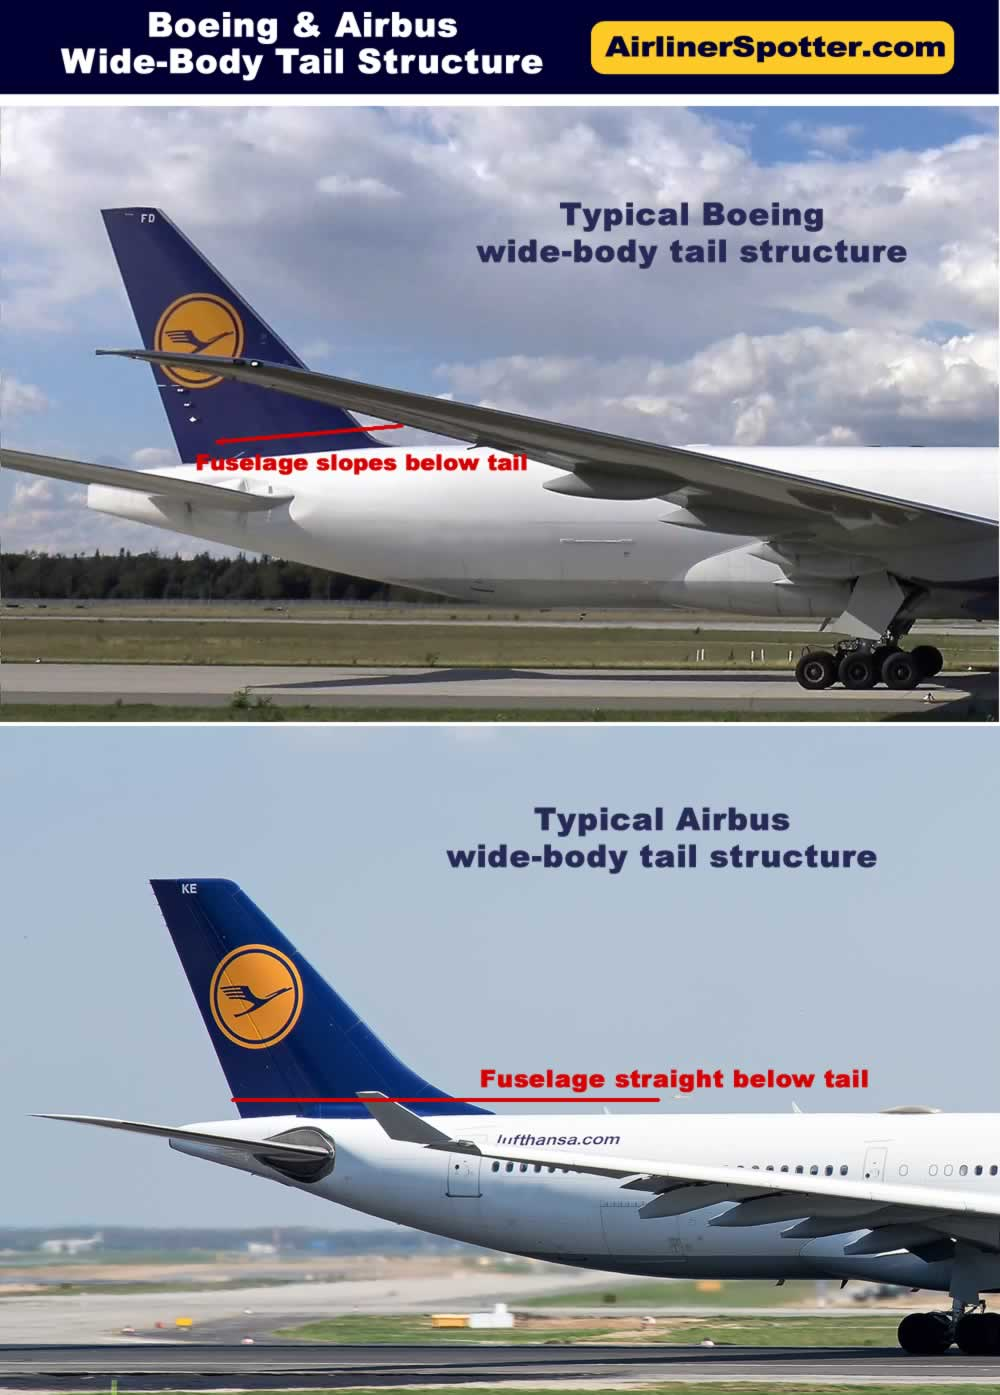 Comparison of typical Boeing wide-body tail structure (top) compared with a typical Airbus structure which has more of a straight alignment across the bottom of the tail